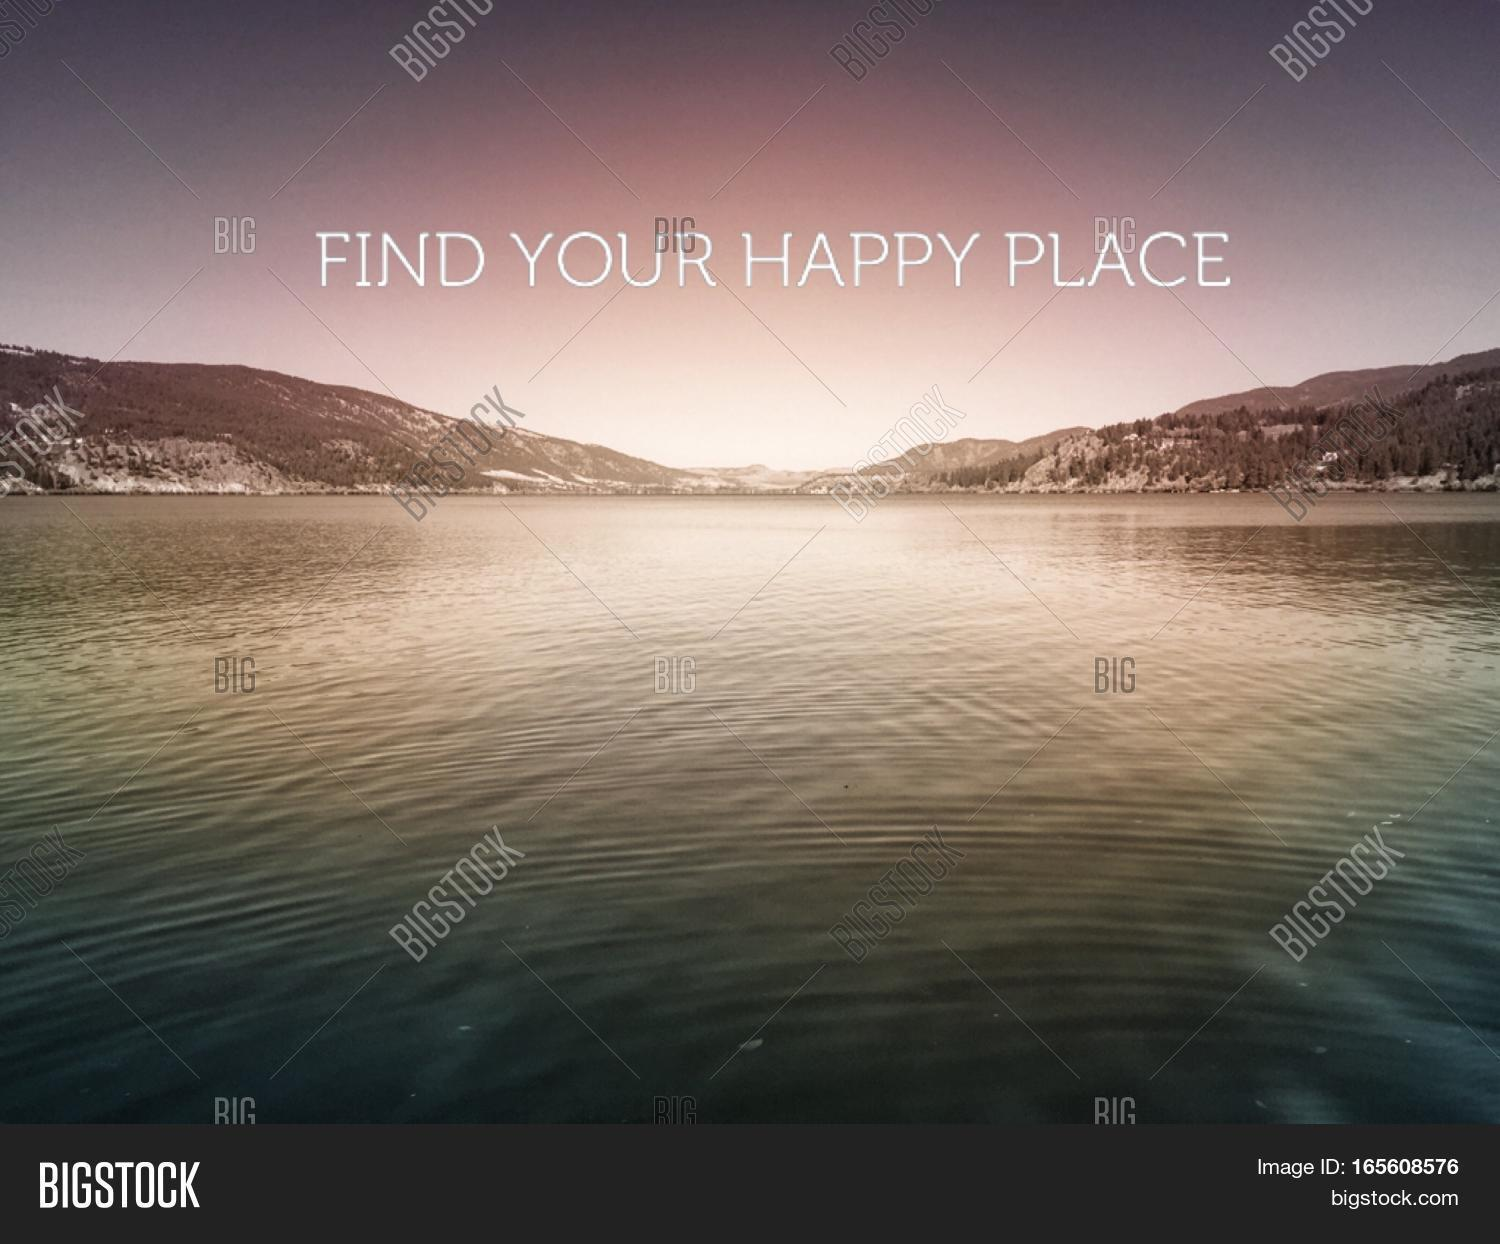 Inspirational Quote On Image Photo Free Trial Bigstock